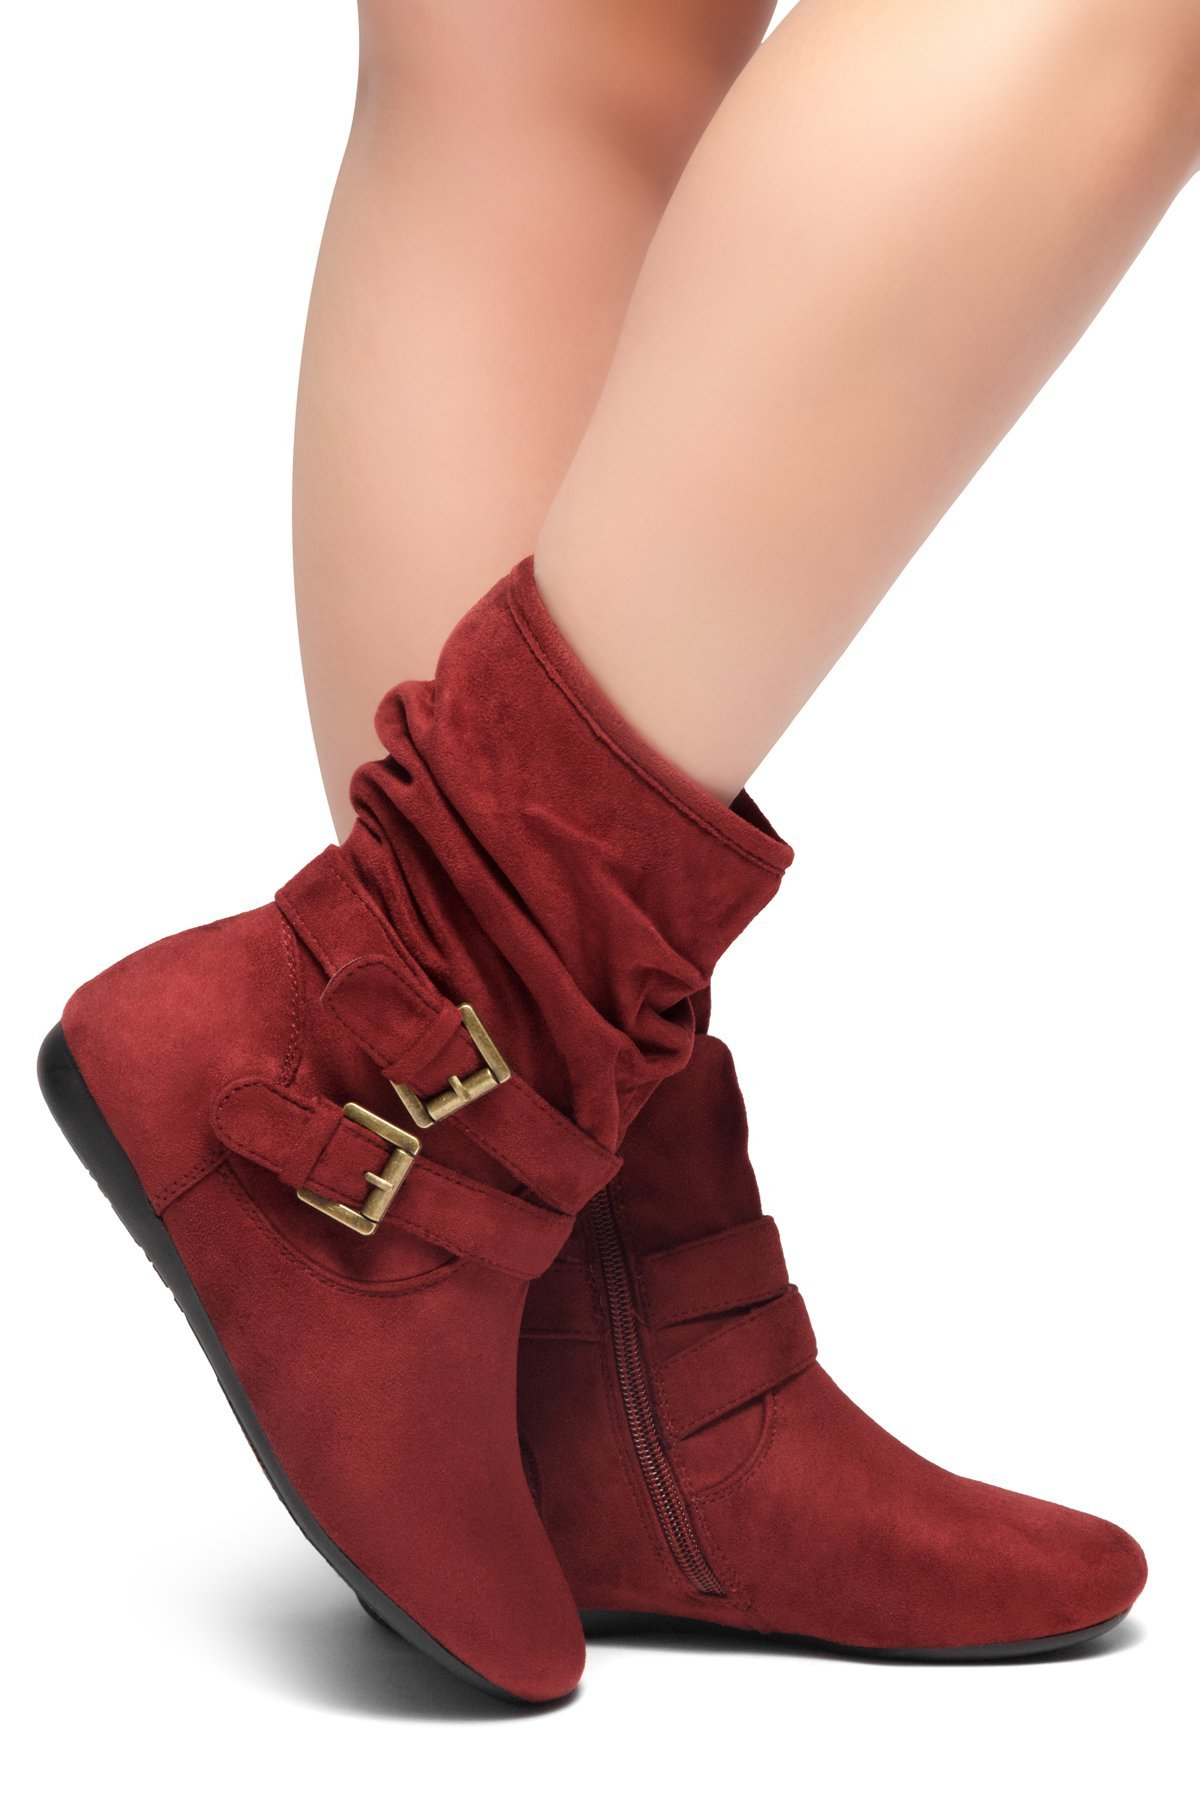 Herstyle Women's Lindell Slouch Ankle Boots Burgundy 10.0